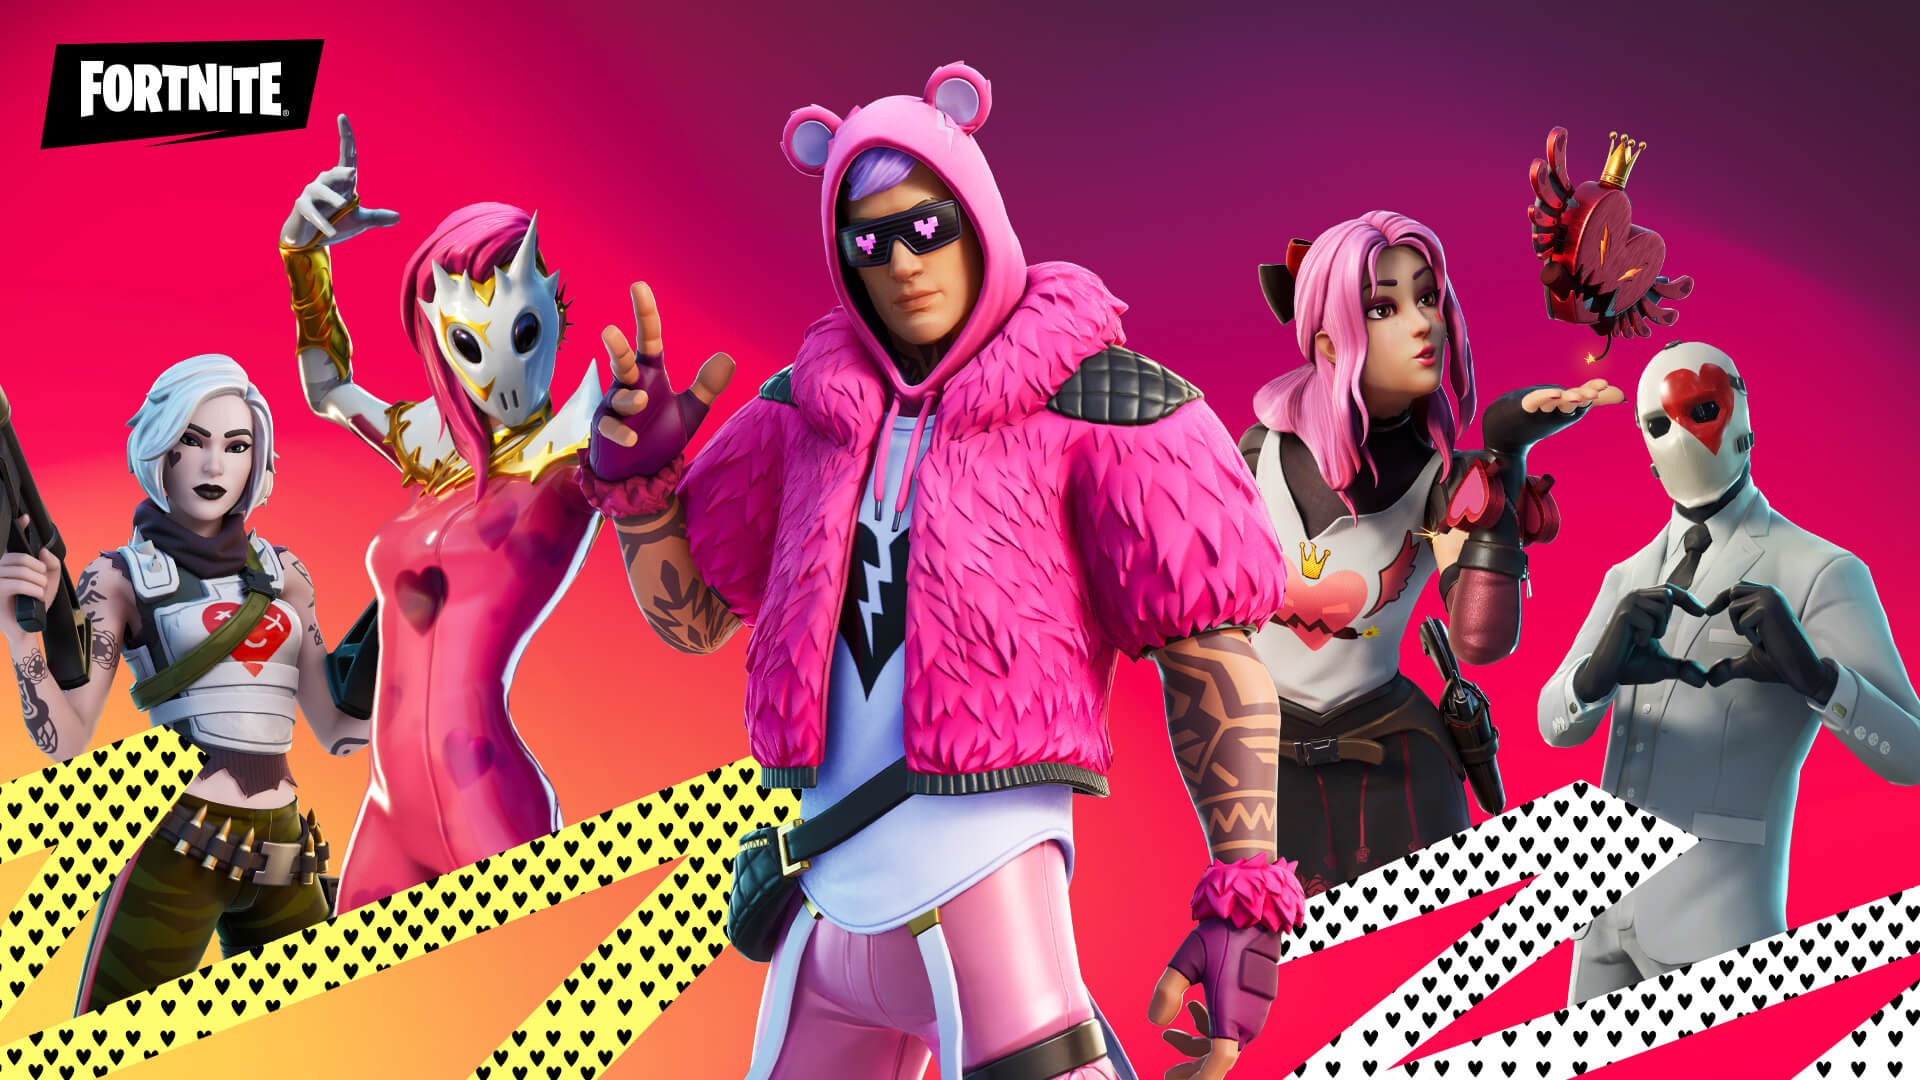 Fortnite's Hearts Wild Valentine's Day event: What you need to know